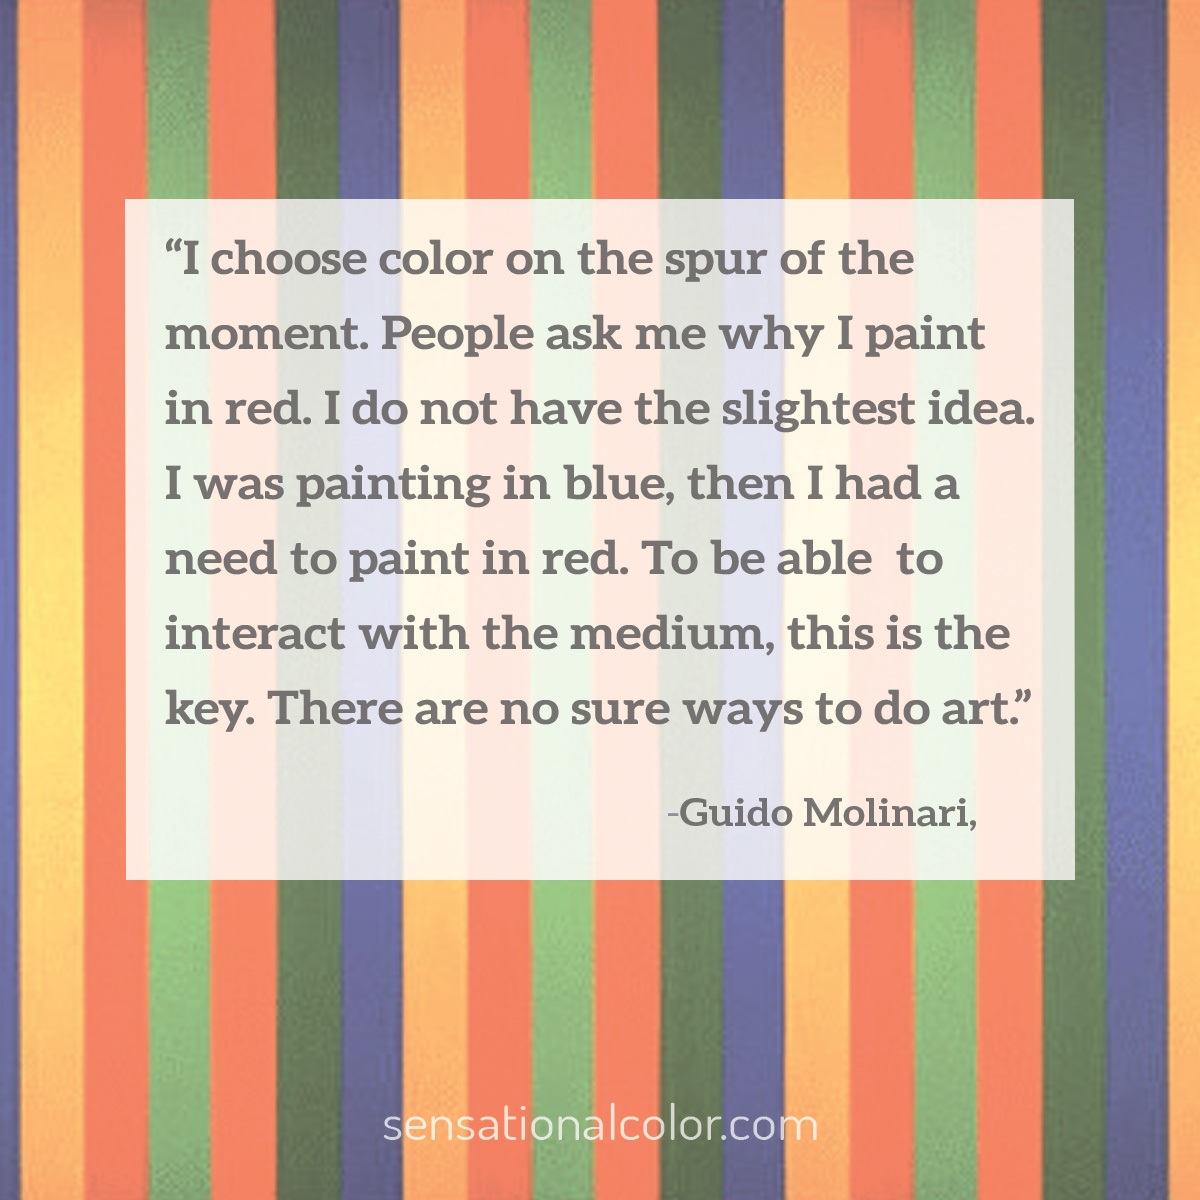 """I choose color on the spur of the moment. People ask me why I paint in red. I do not have the slightest idea. I was painting in blue, then I had a need to paint in red. To be able to interact with the medium, this is the key. There are no sure ways to do art."" - Guido Molinari"